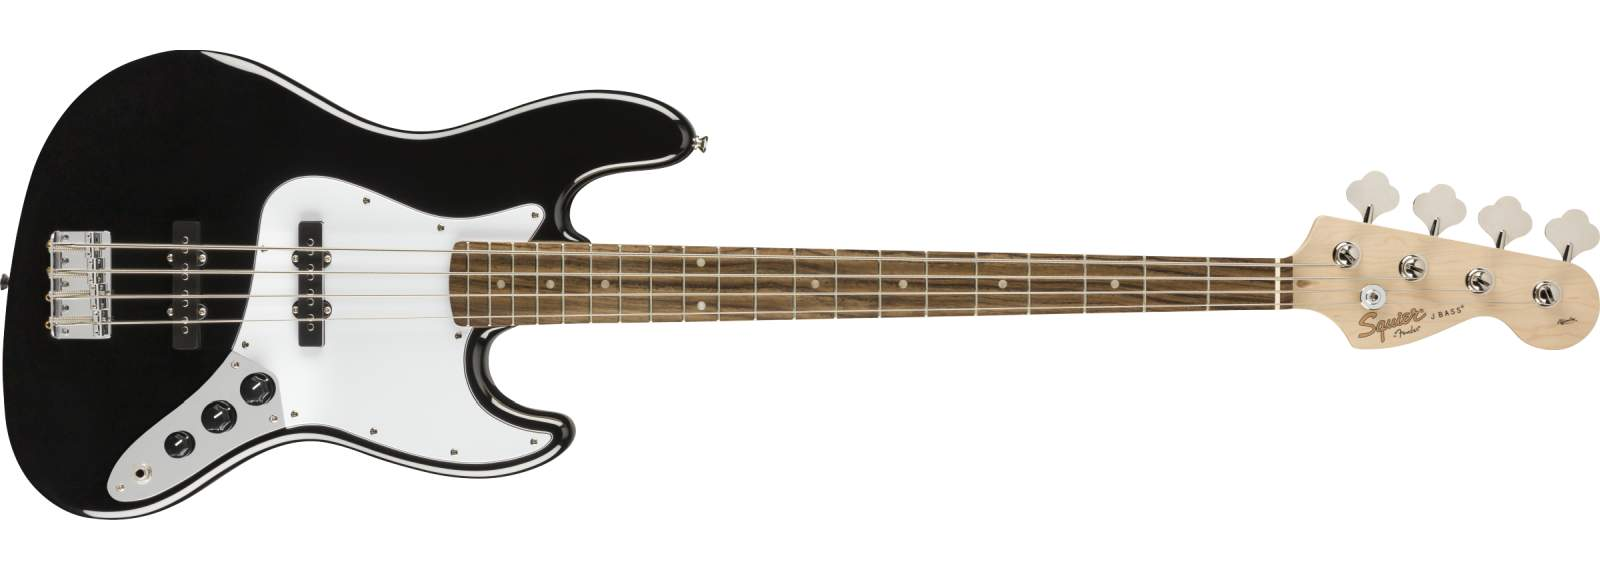 Squier Affinity J-Bass LRL Black